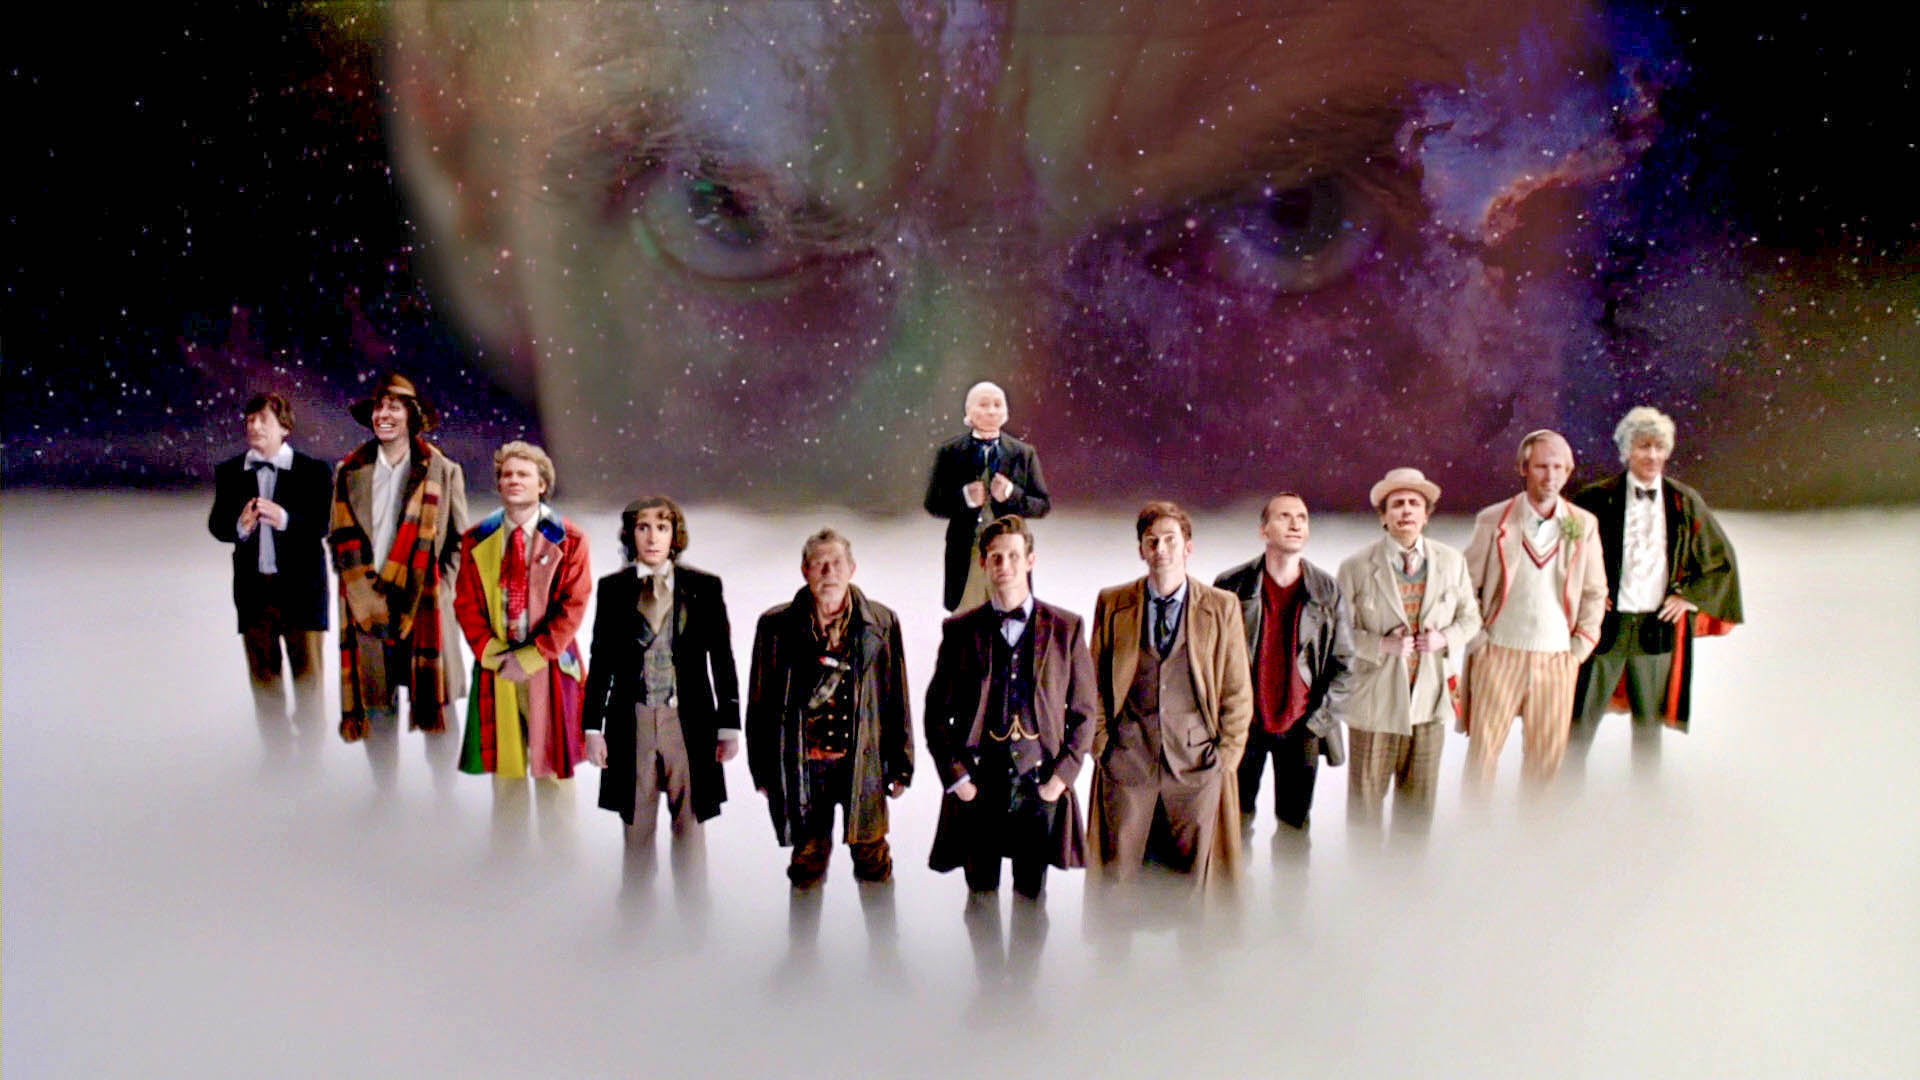 Doctor Who Tv Show New High Resolution Wallpapers - All Hd